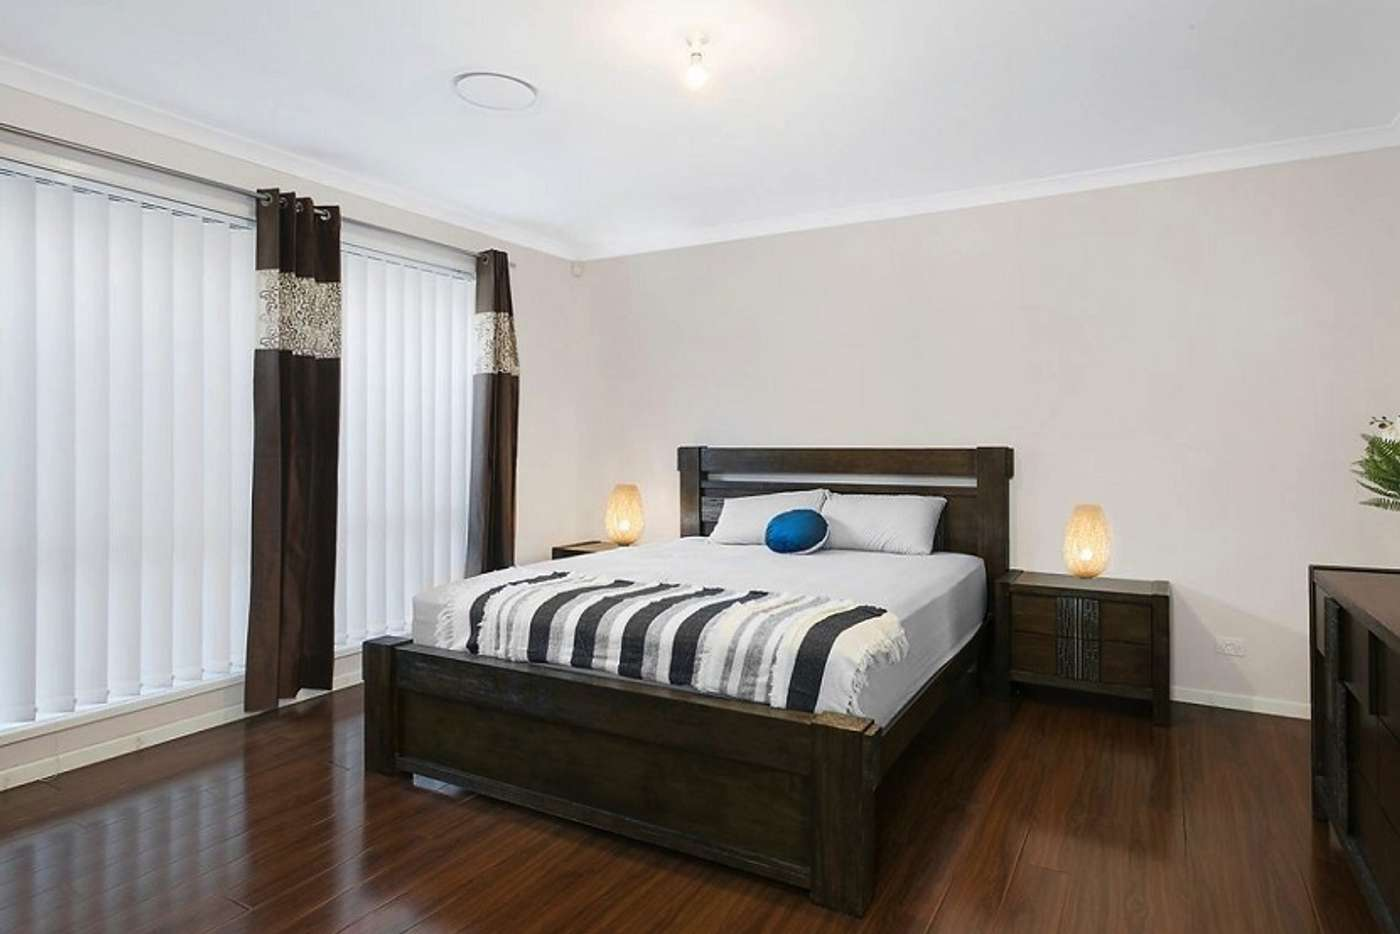 Sixth view of Homely house listing, 44 Schoffel street, Riverstone NSW 2765